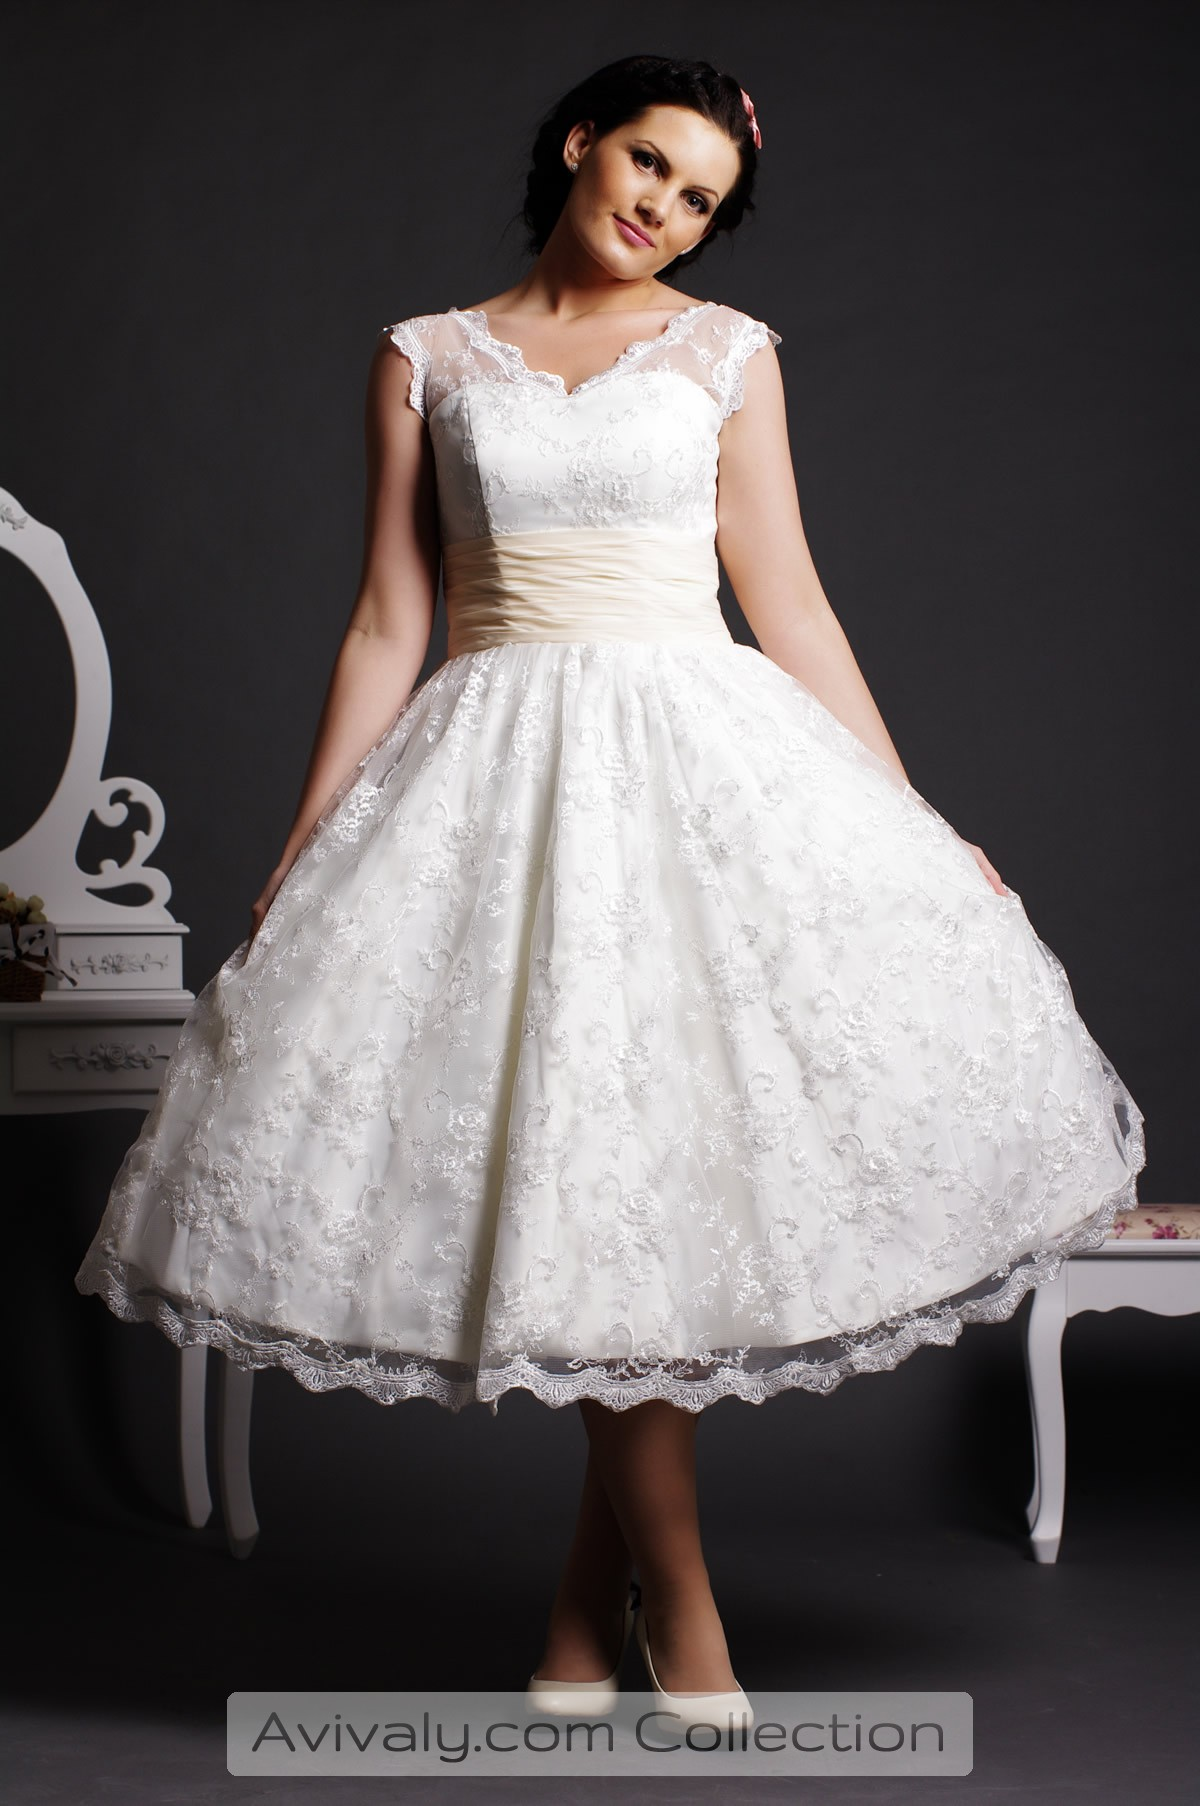 Scalloped Edge Lace Layered Tea Length Ball Gown Avivaly